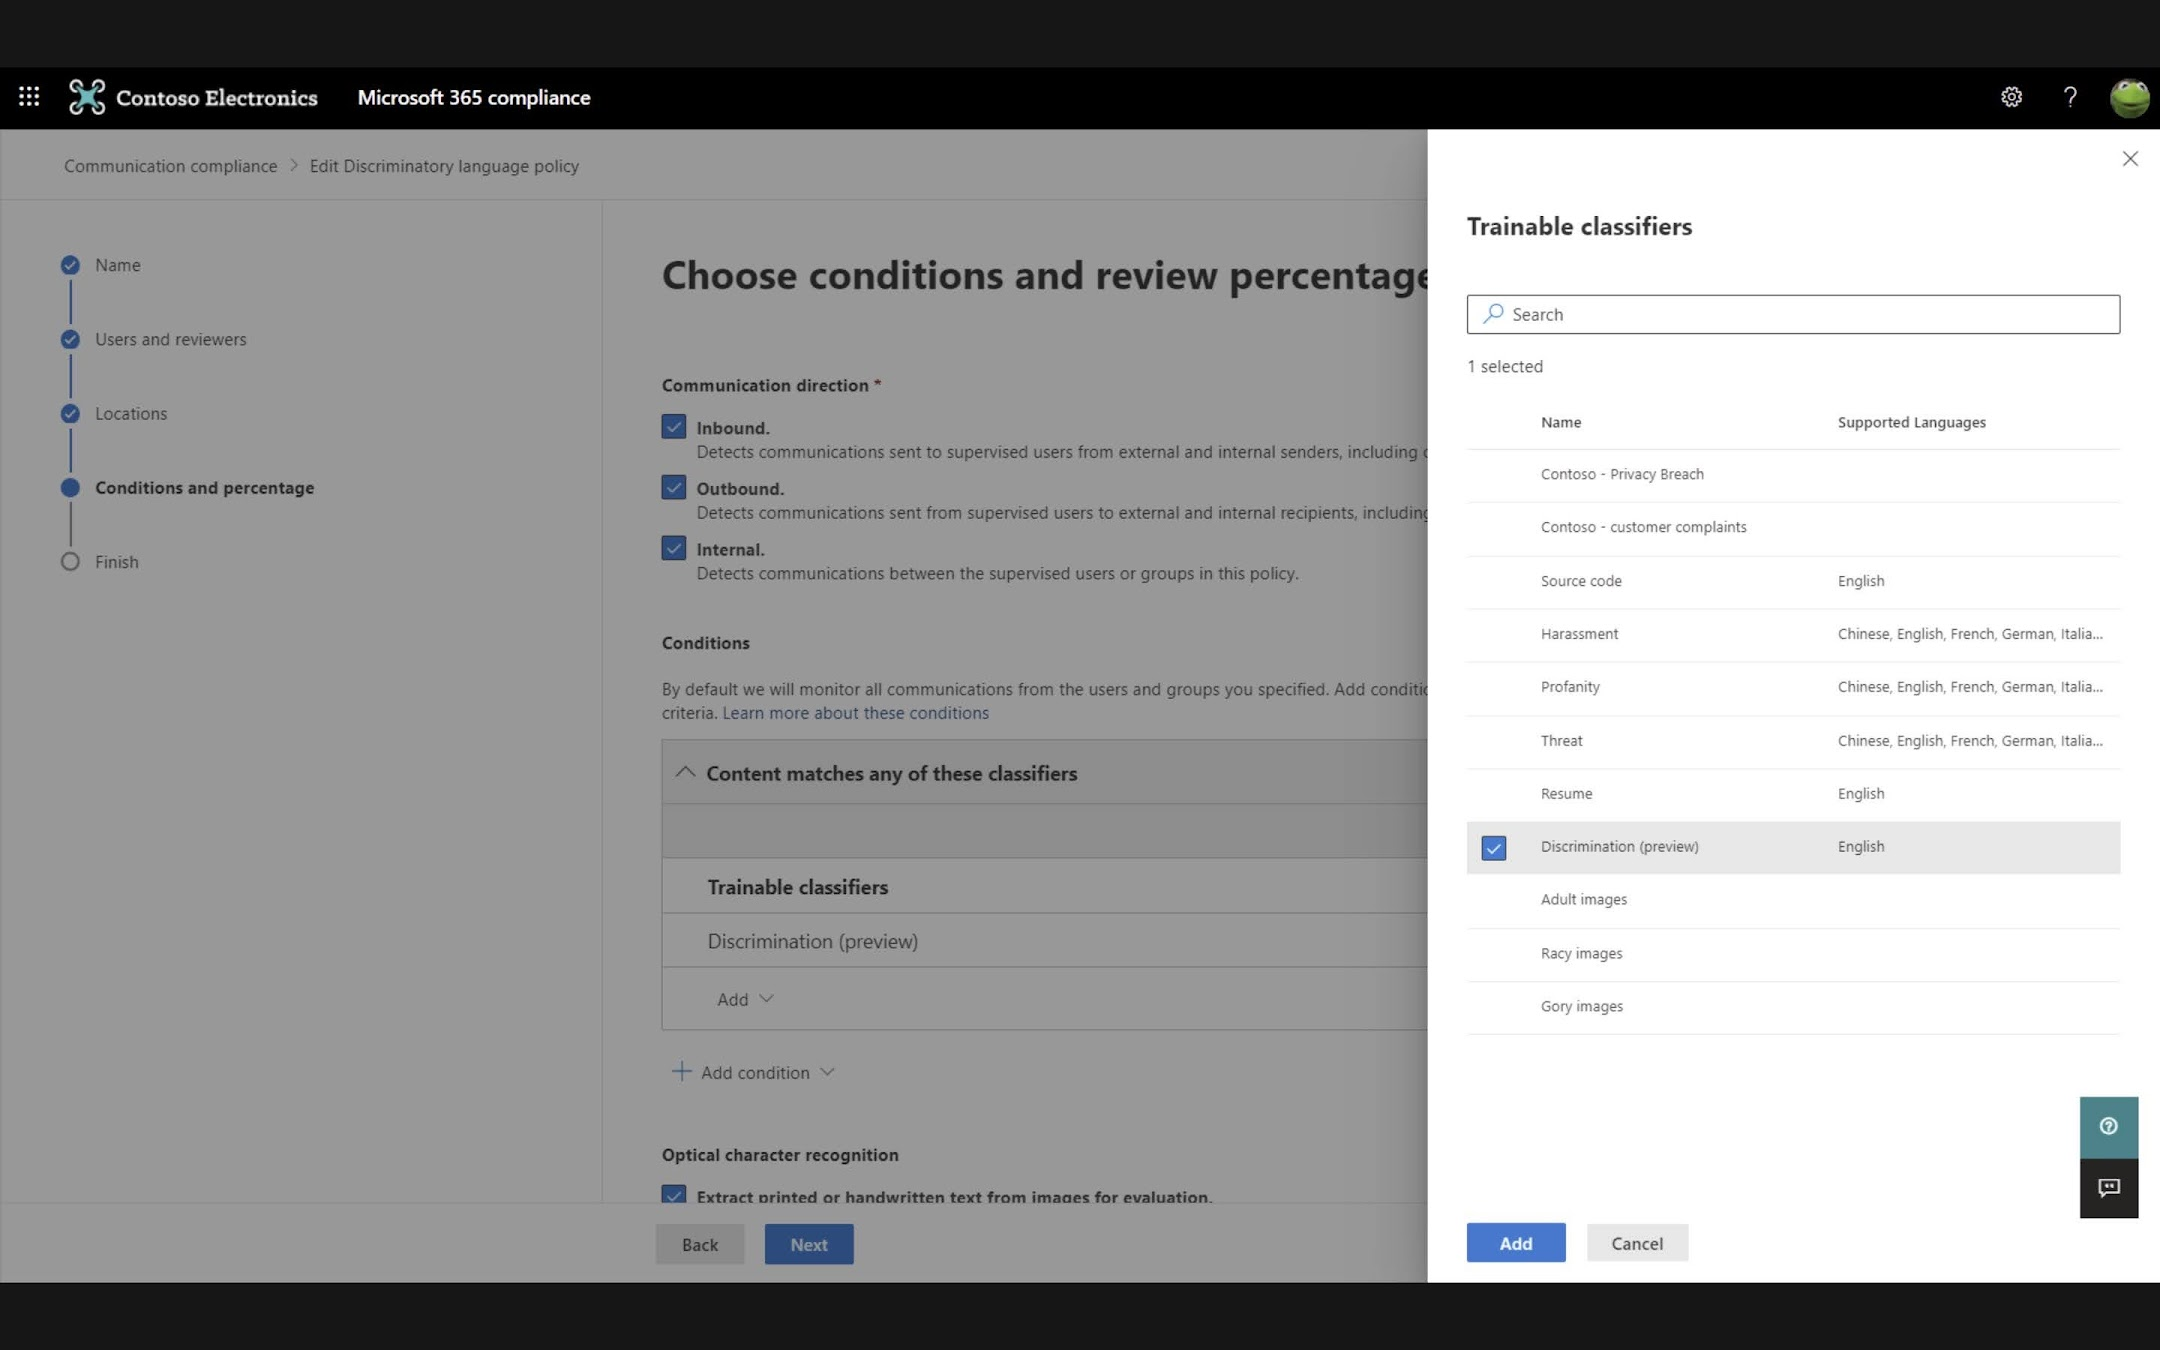 You can select this classifier as a condition for matching content in Microsoft Teams chat or emails, for instance, in both new or existing Communication Compliance policies.